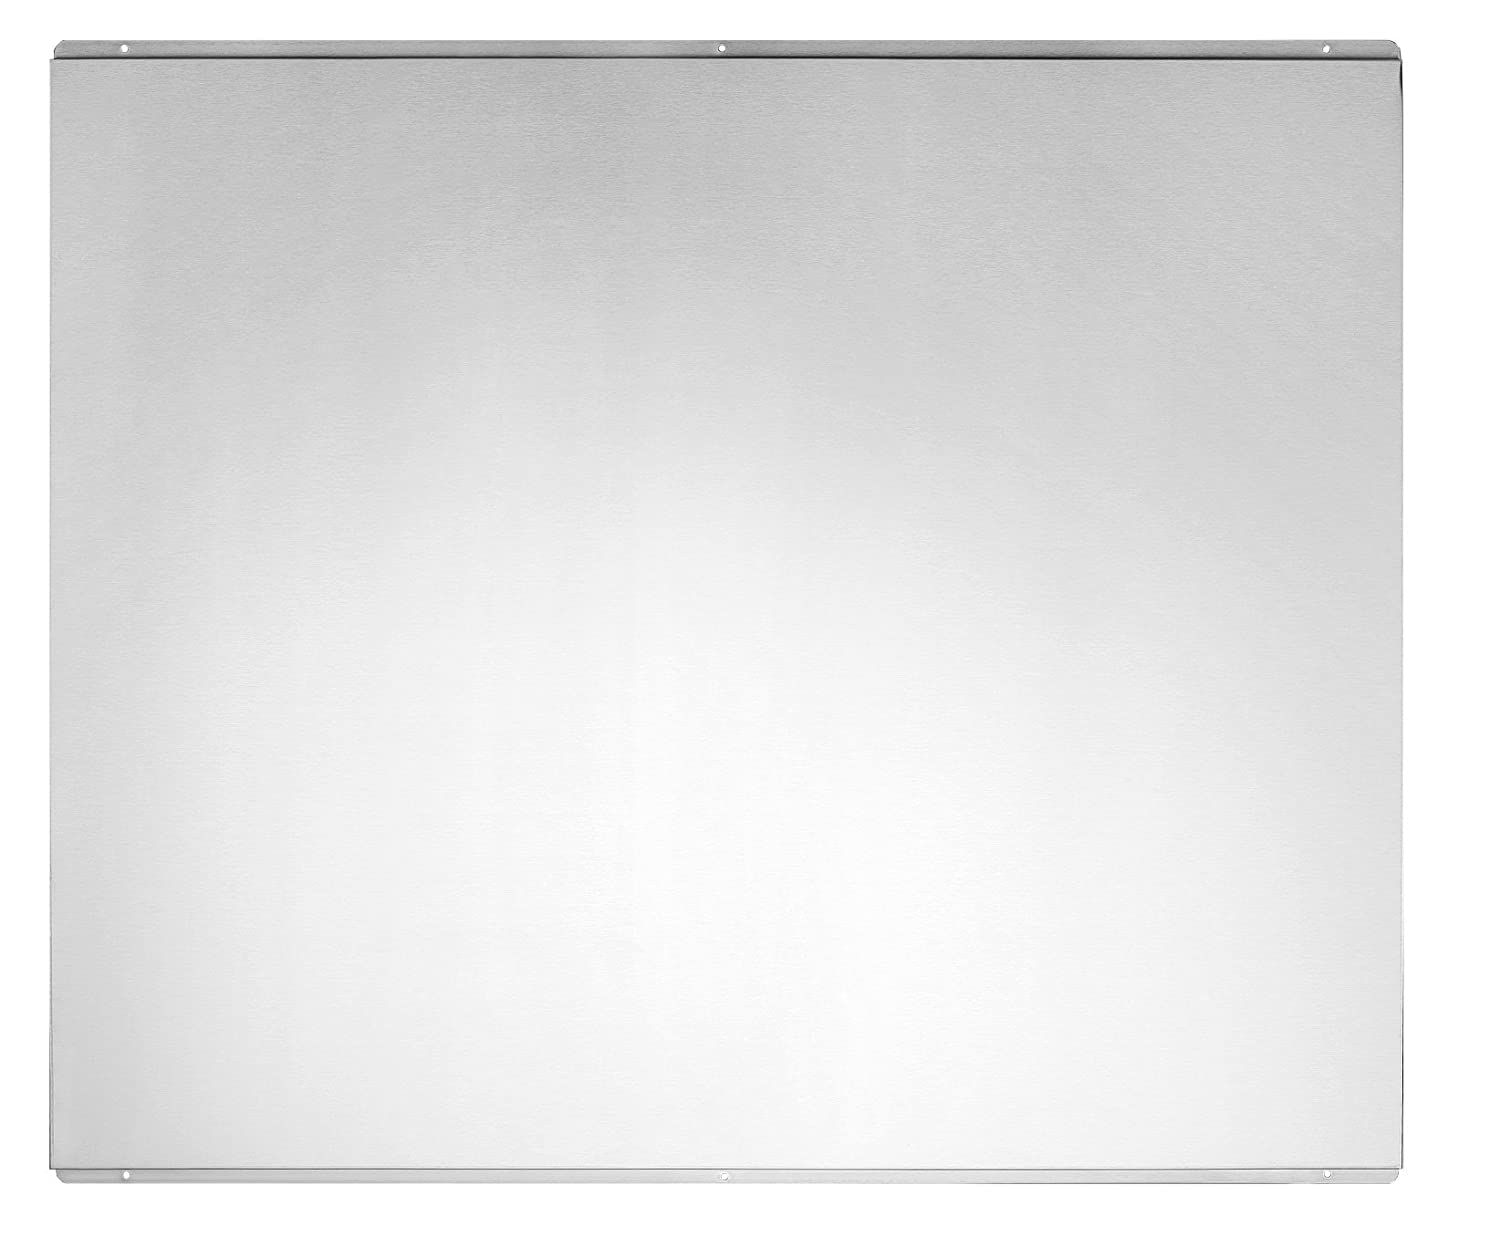 Universal Cookology Unbranded SB900SS Splashback to fit 90cm Flat Hood in Stainless Steel